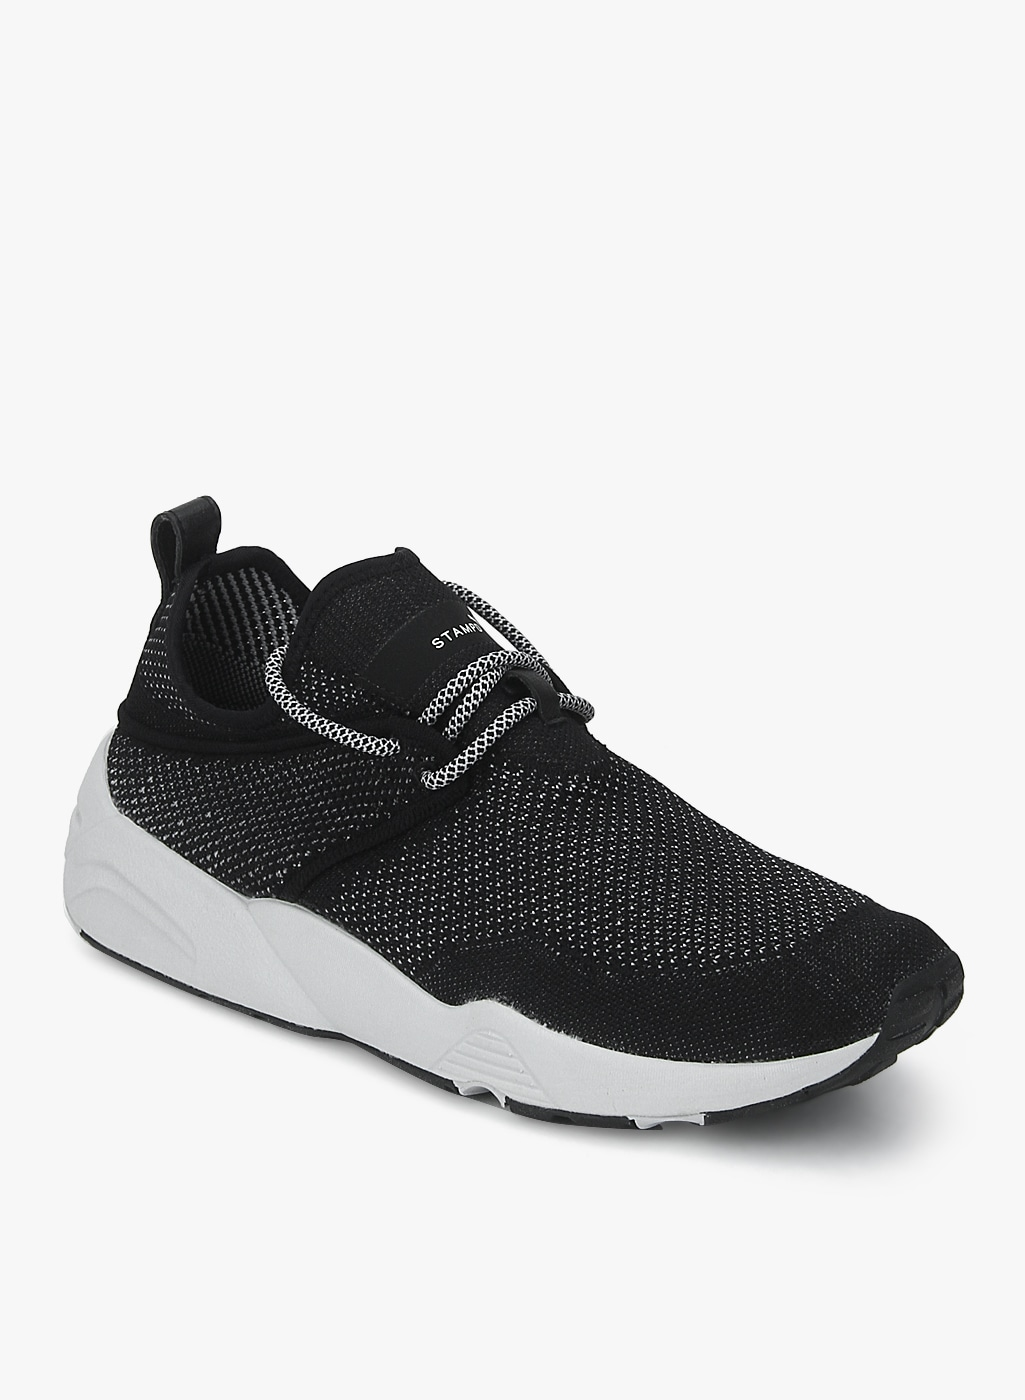 aedfc033087a Buy Ignite Limitless Sr Cnvl Fm Black Sneakers - Casual Shoes for ...